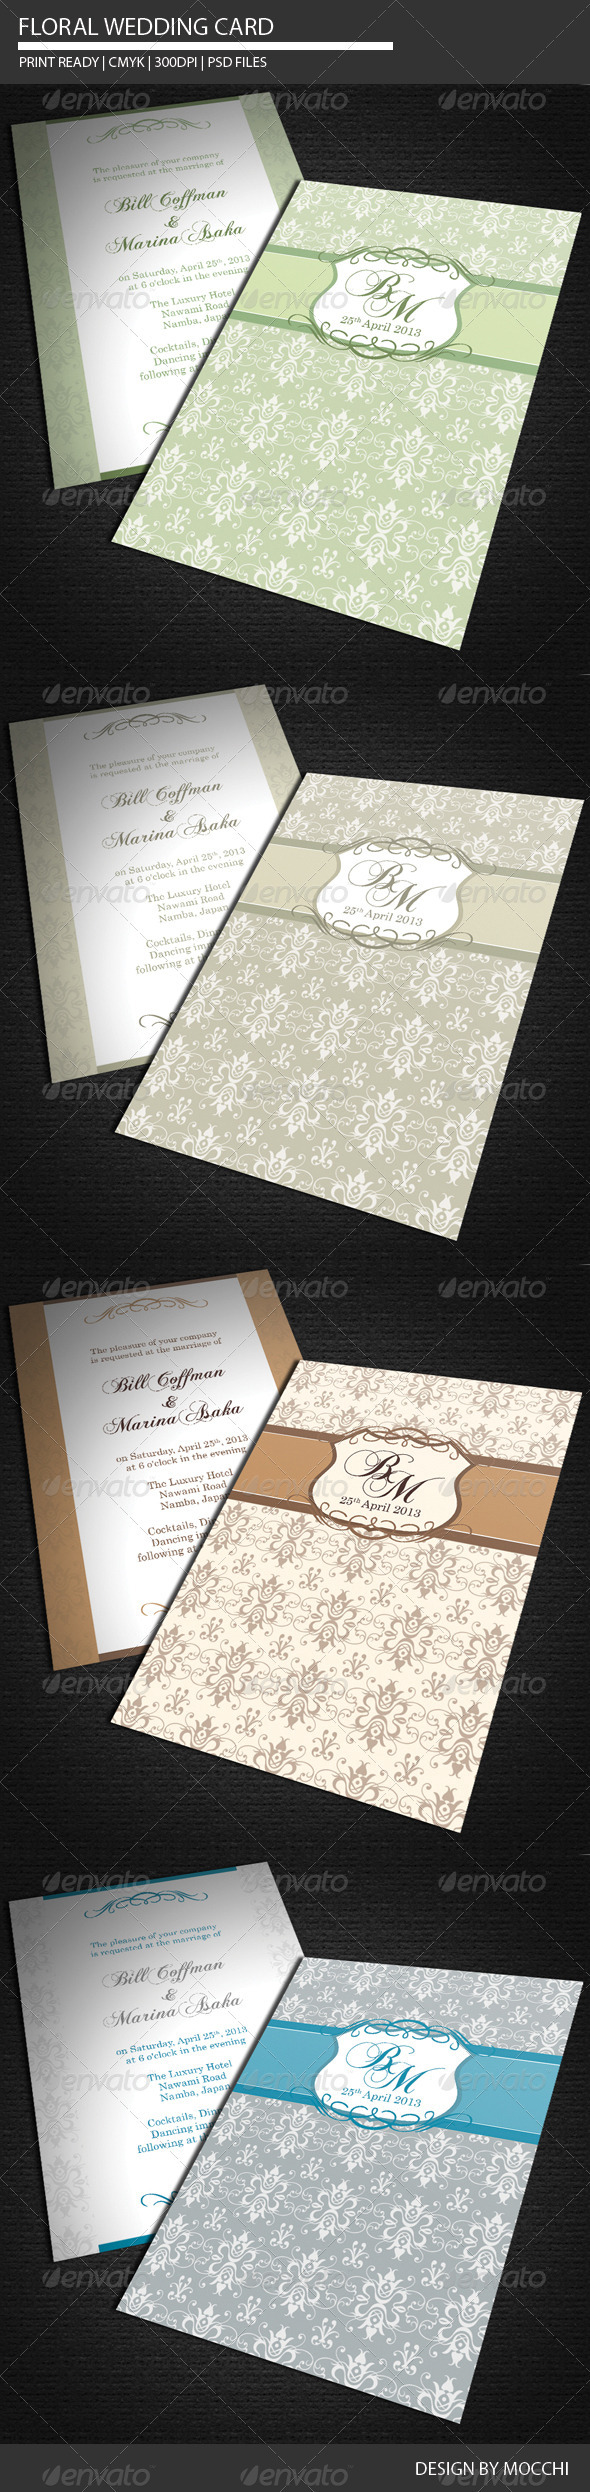 Floral Wedding Card - Weddings Cards & Invites